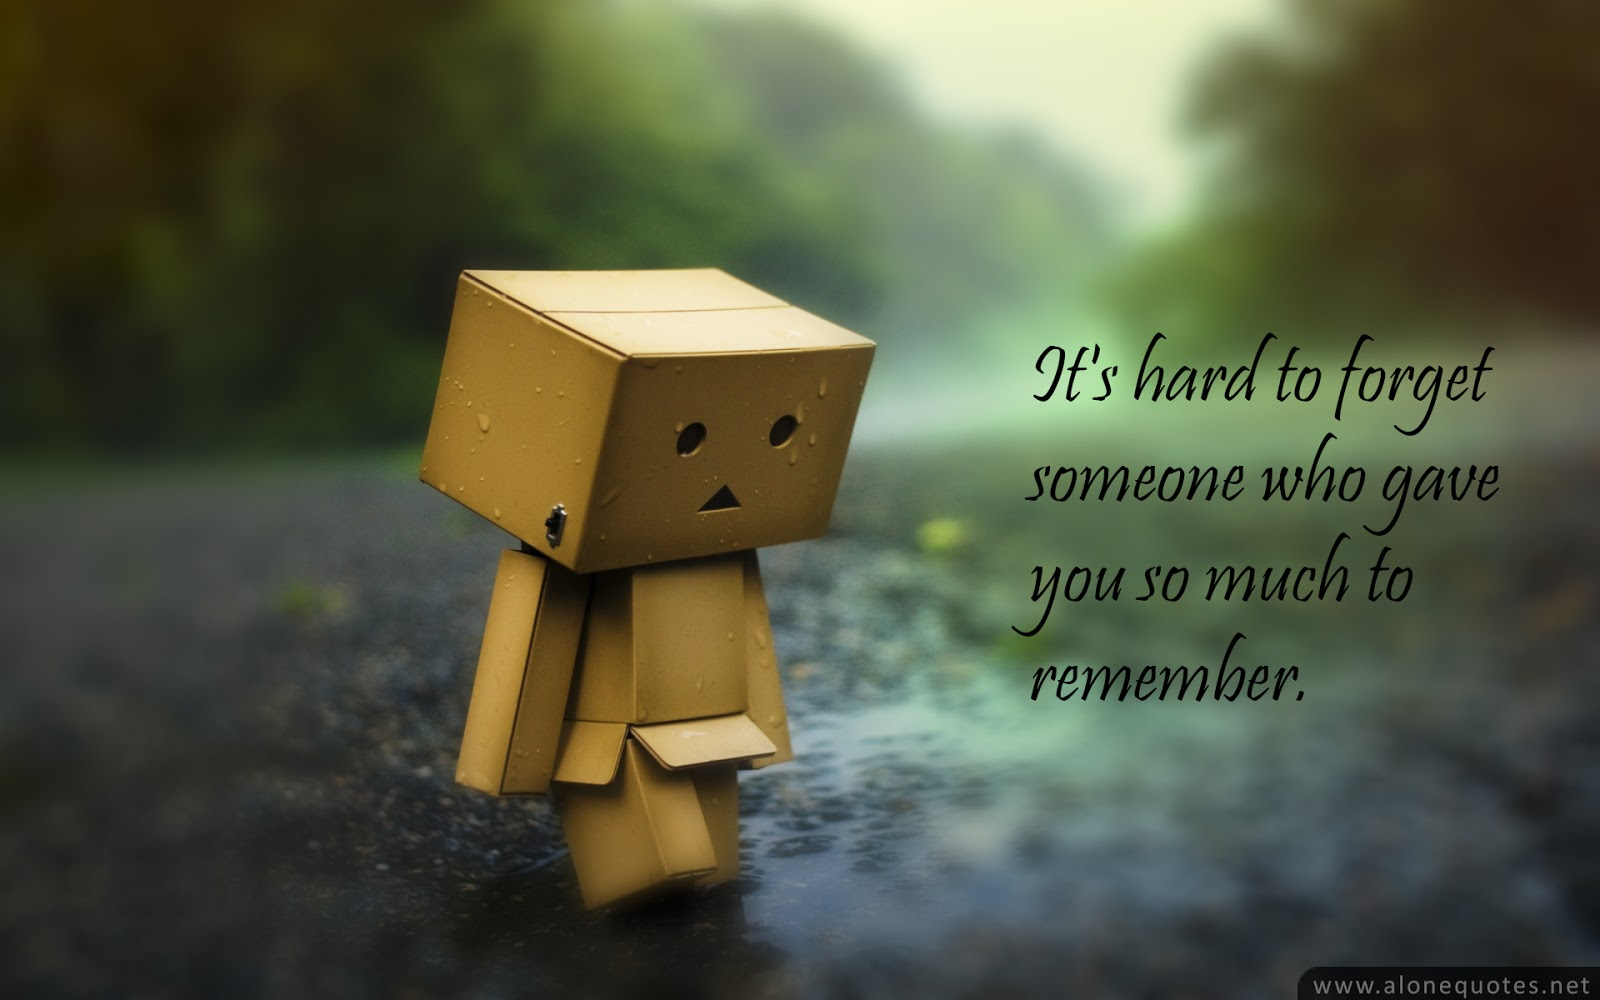 sad alone love wallpapers with quotes download 2013 sad 1600x1000